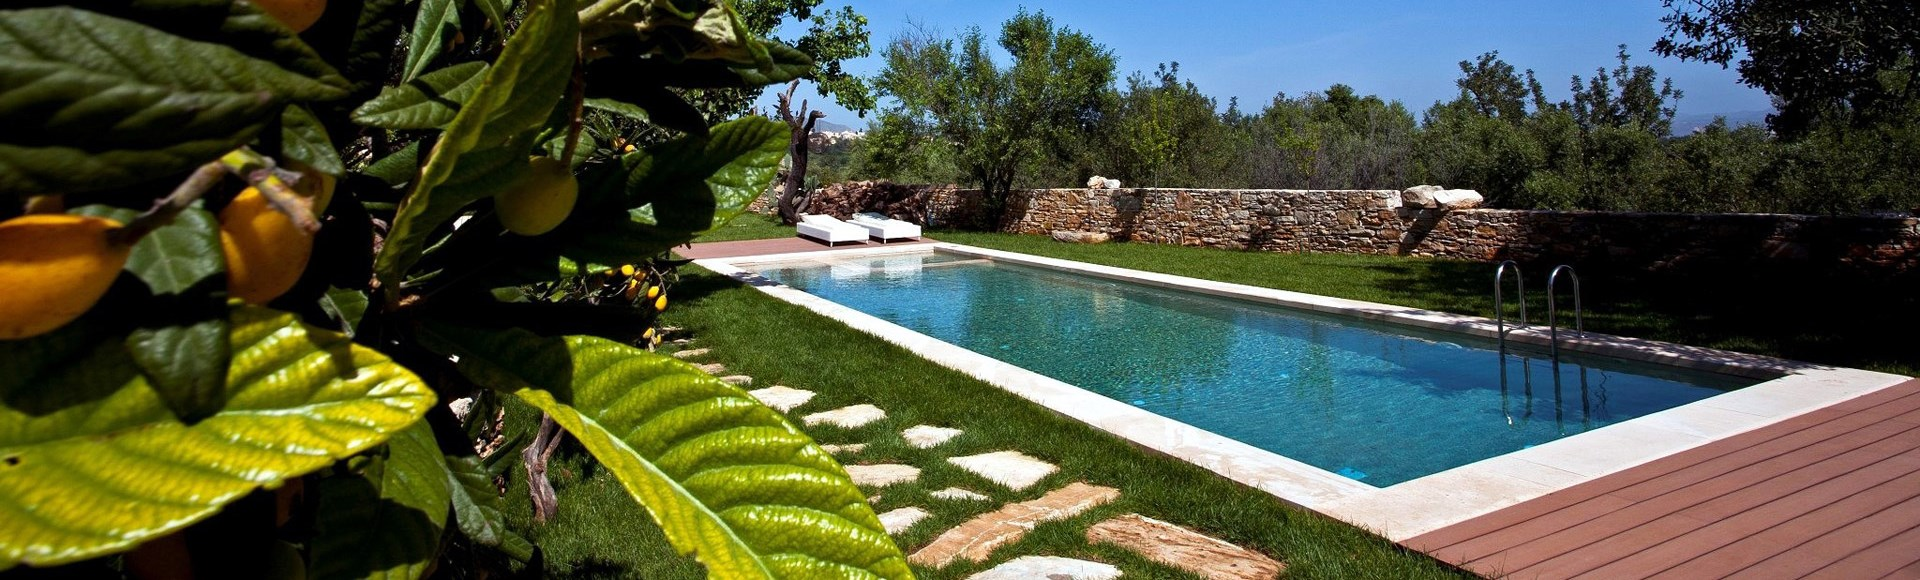 Villas with Pools in Crete, Corfu & Paros | Handpicked by Alargo